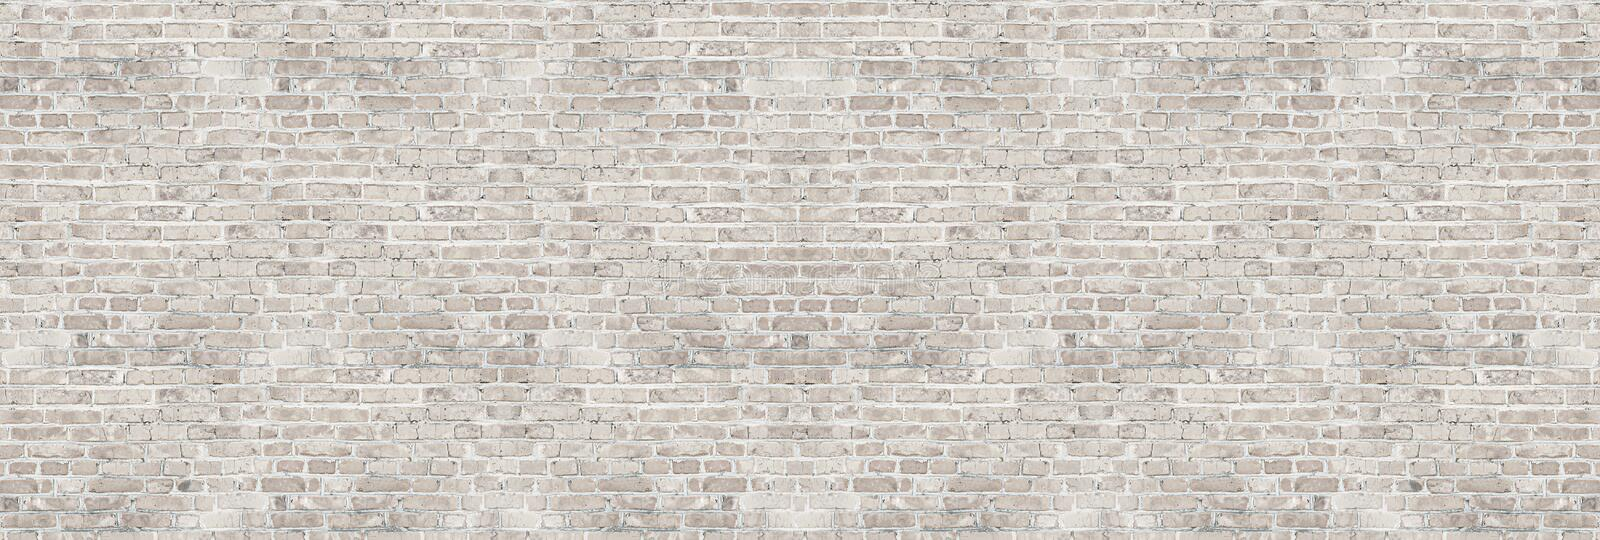 Vintage white wash brick wall texture for design. Panoramic background royalty free stock photo